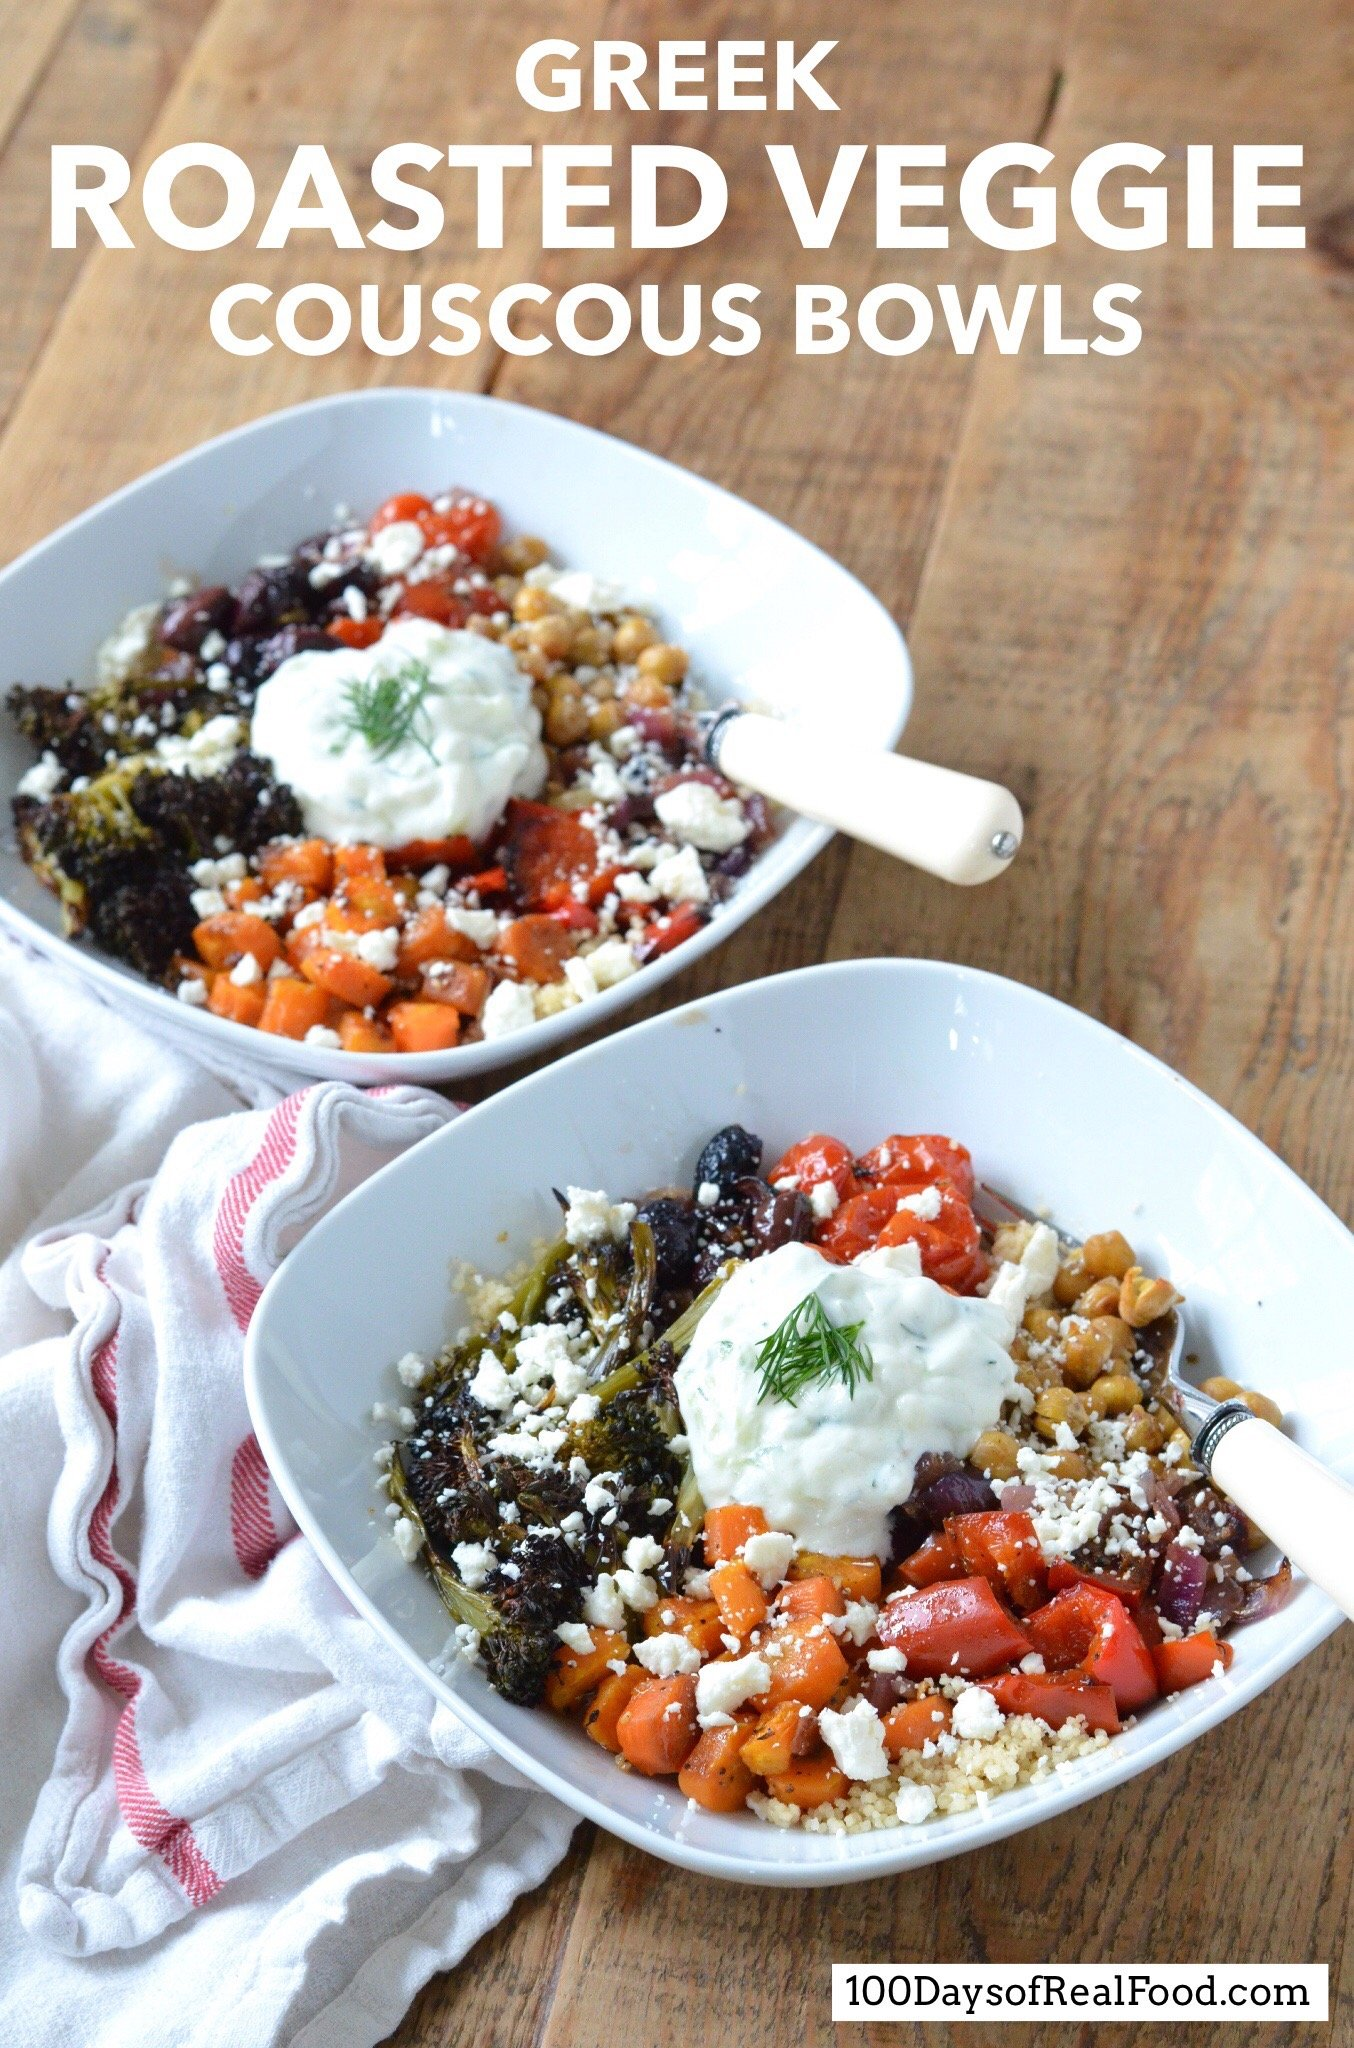 Two Roasted Veggie Couscous Bowls plated on a table